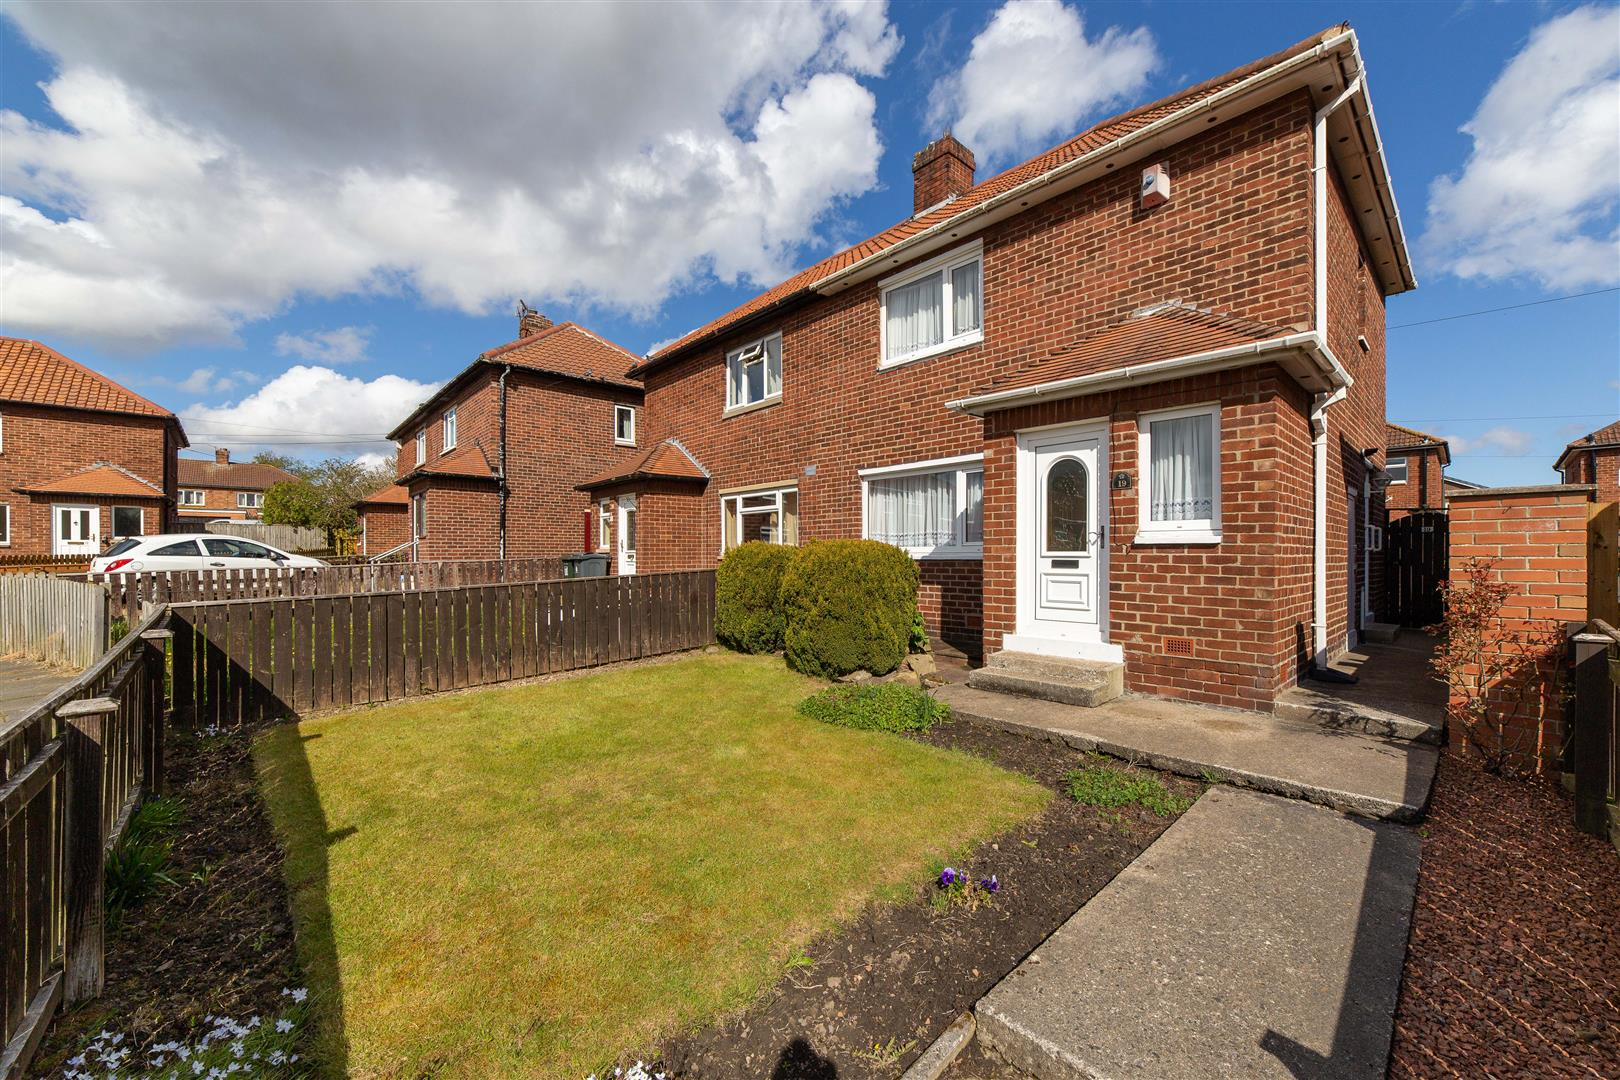 2 bed semi-detached house for sale in Newcastle Upon Tyne, NE13 6HF, NE13